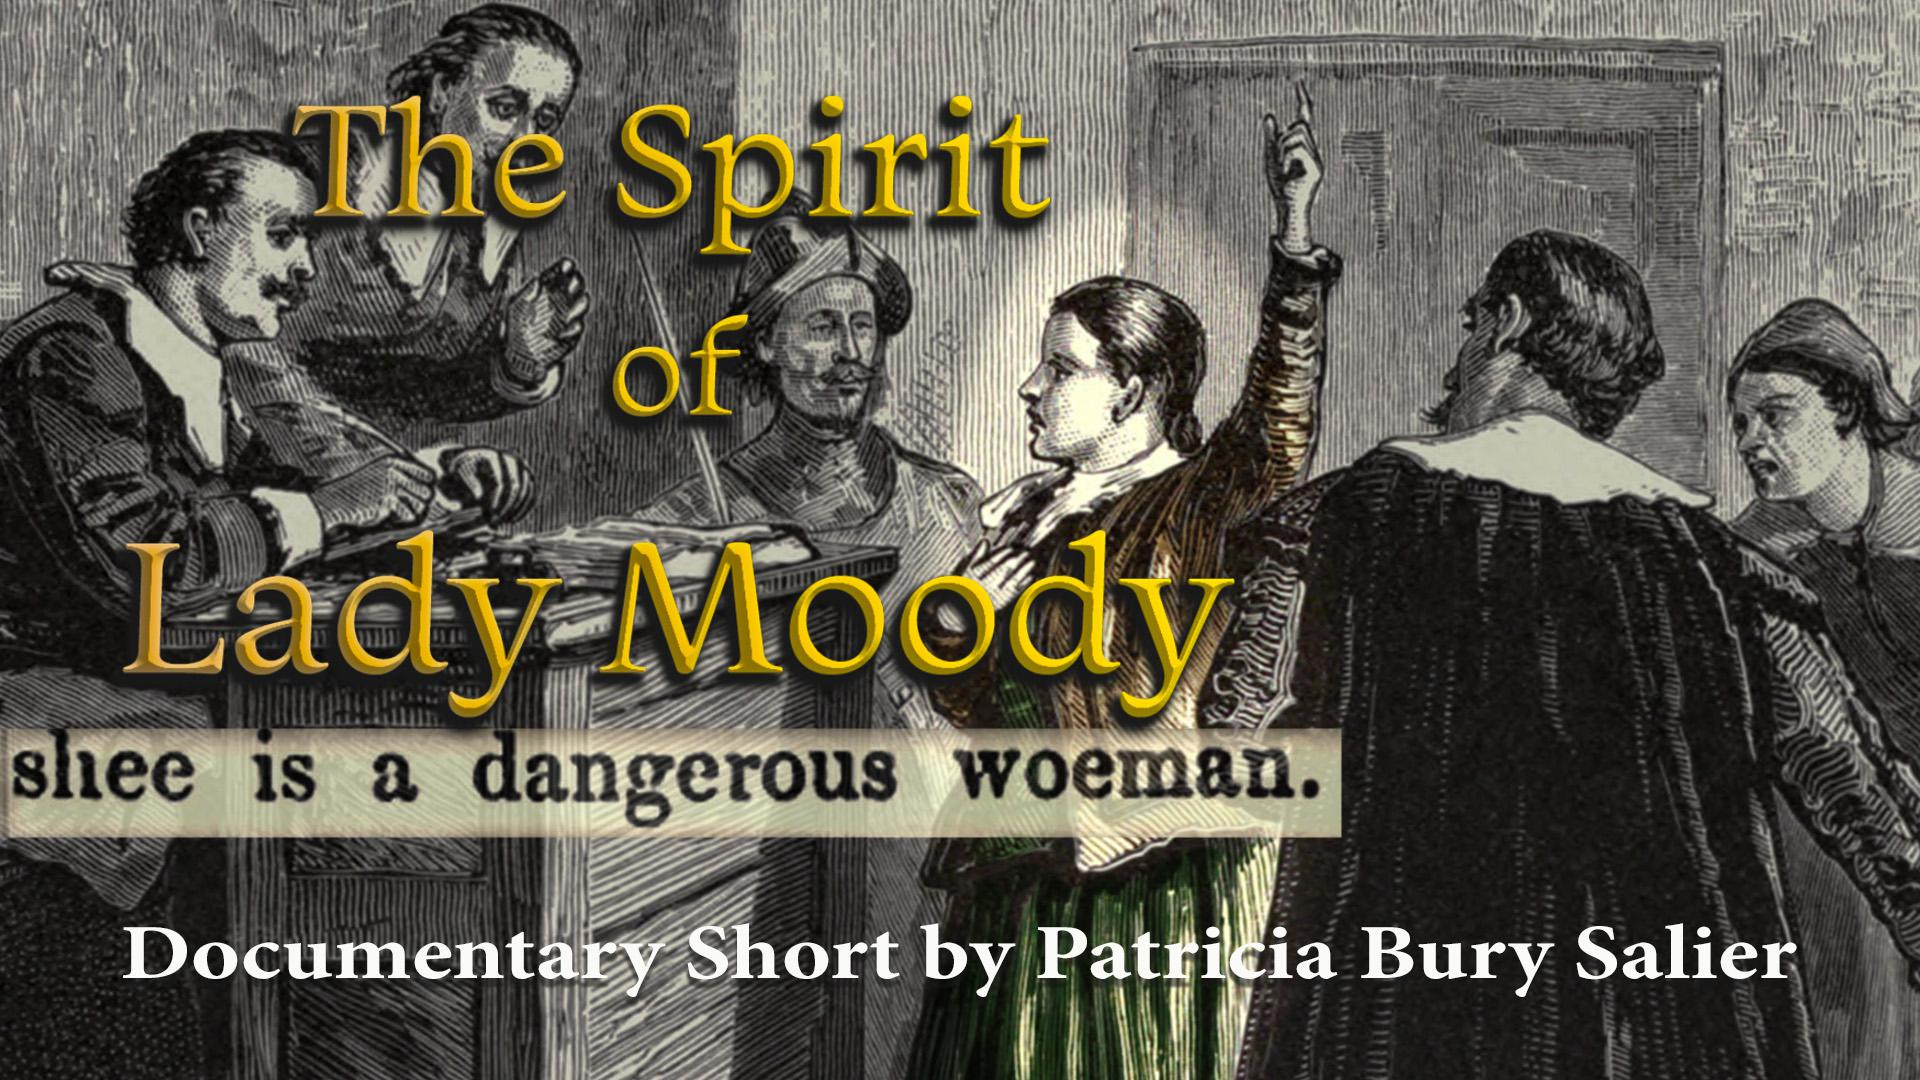 THE SPIRIT OF LADY MOODY      (to play film click circle button to the right. To add to watchlist, click + button below it)